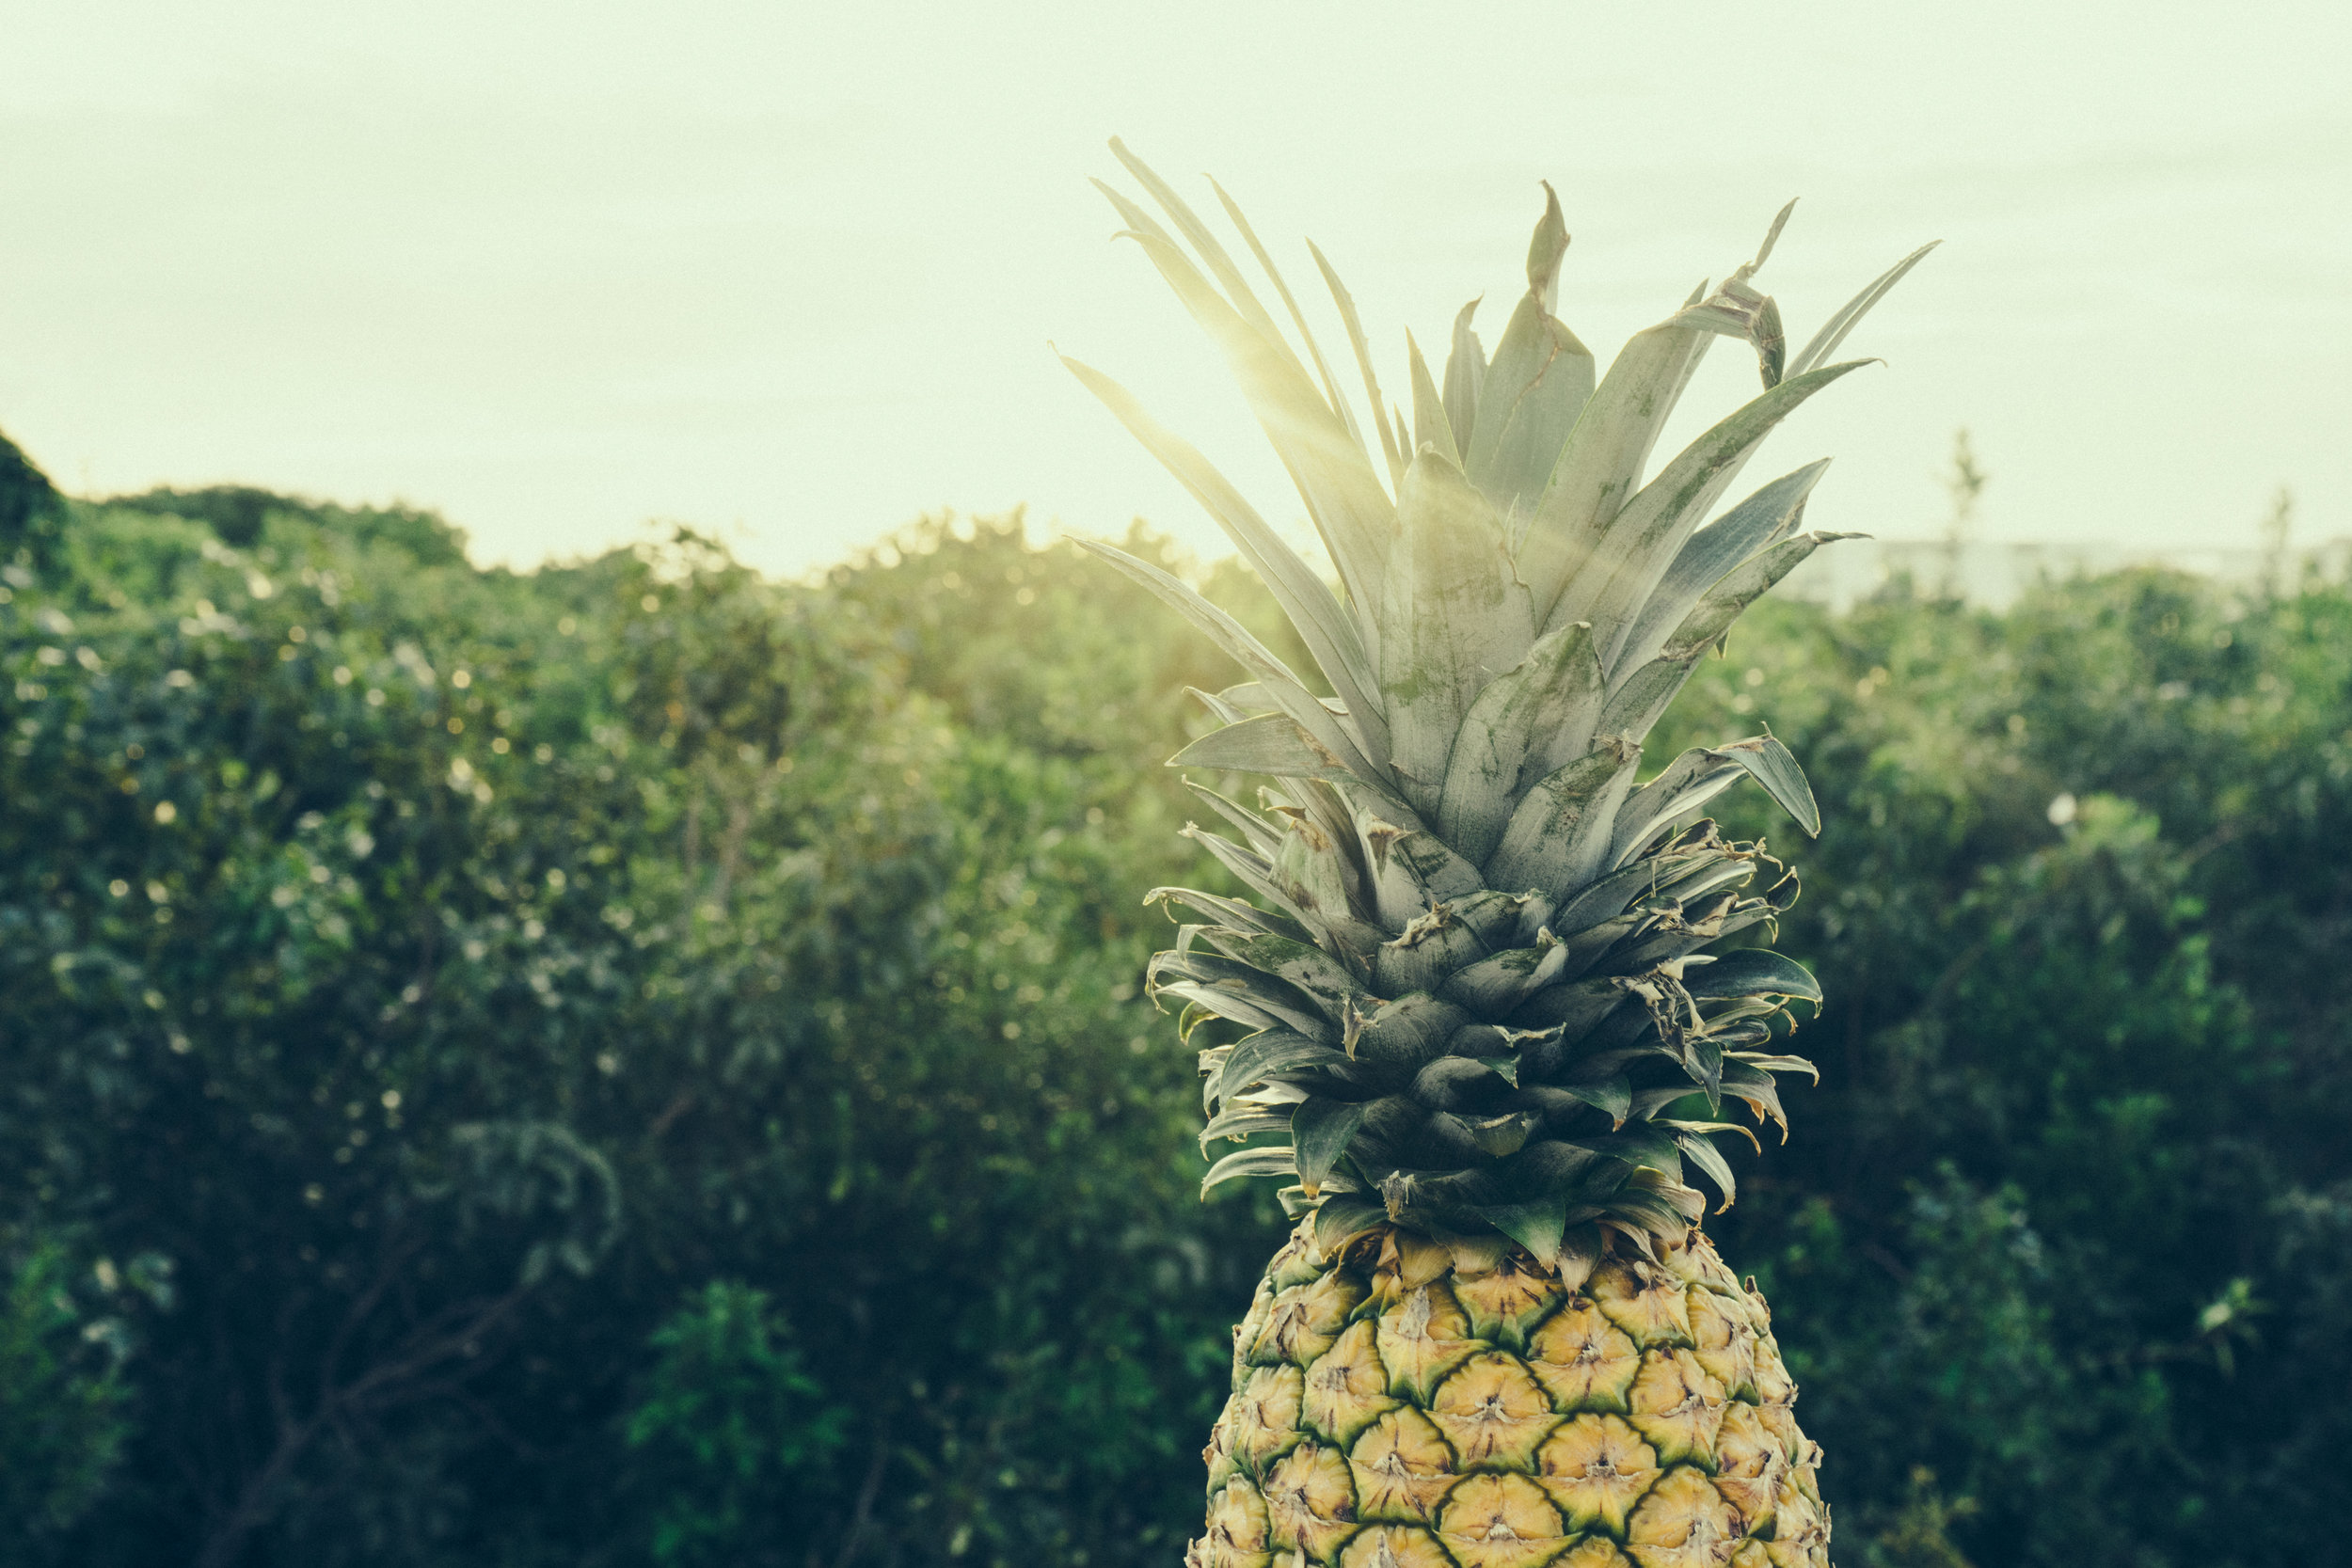 We Make the Best Pineapple. Period. - Curious?